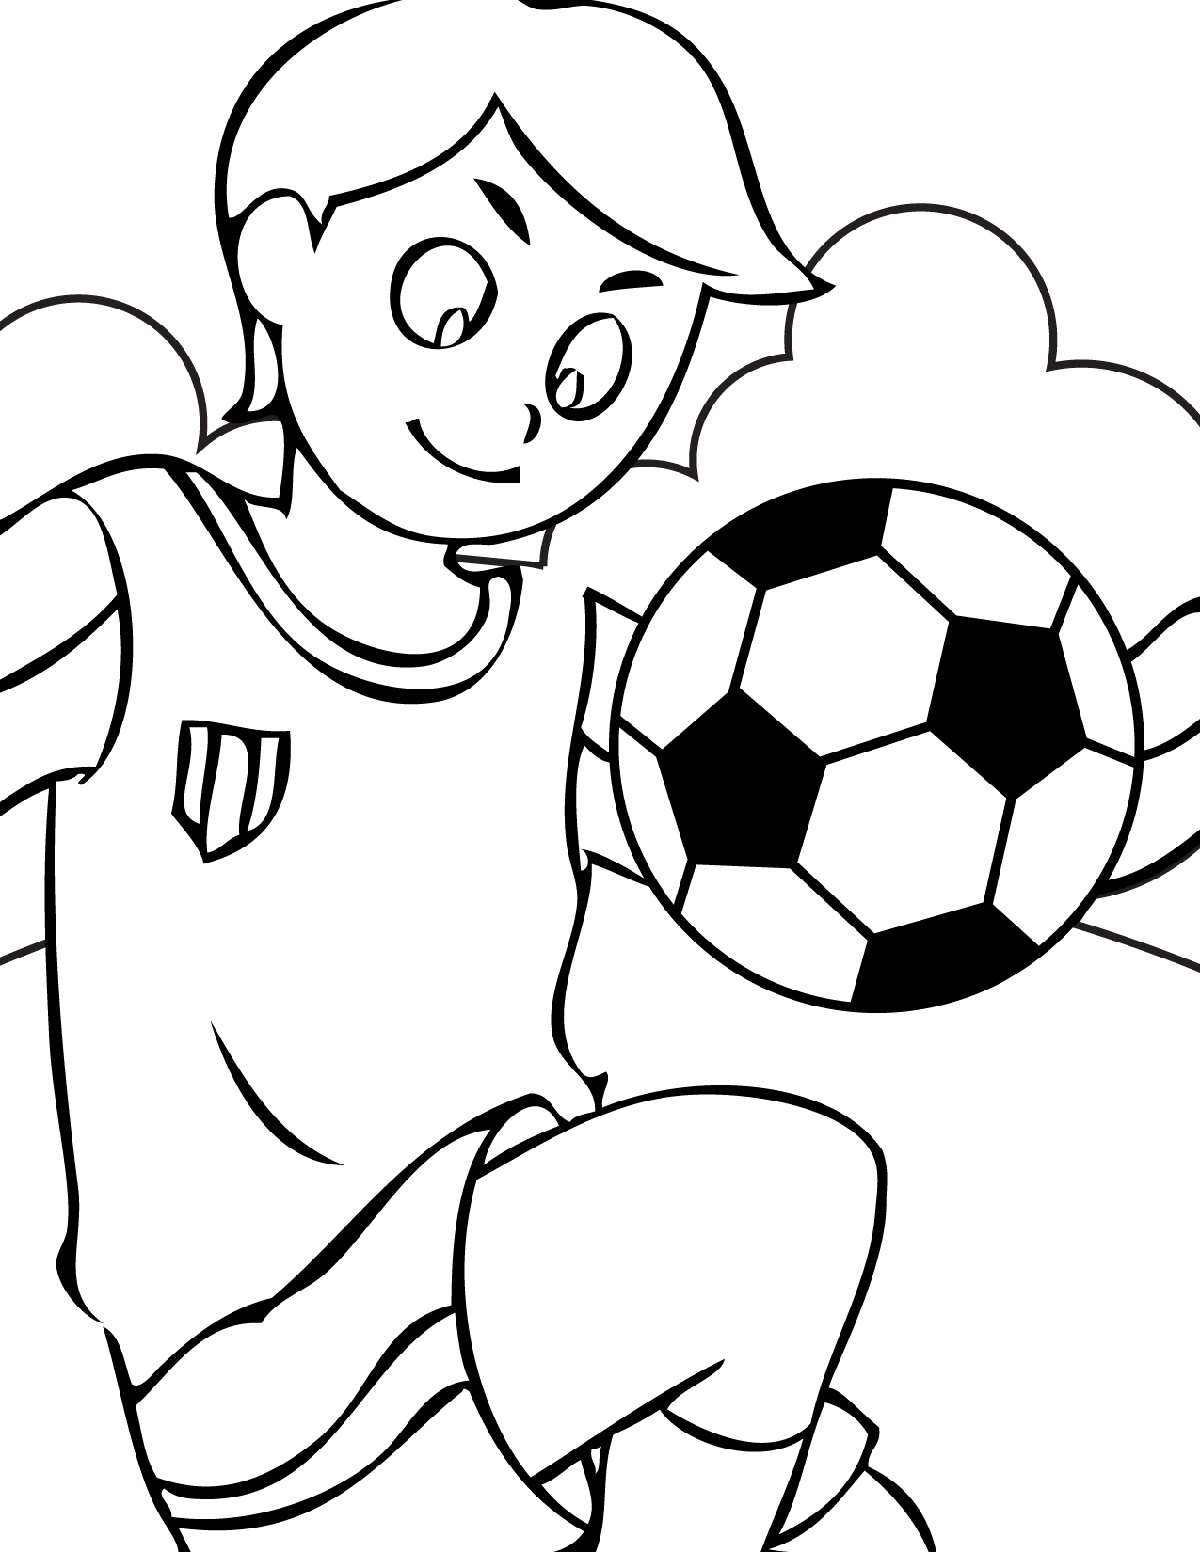 Sports Coloring Pages Soccer